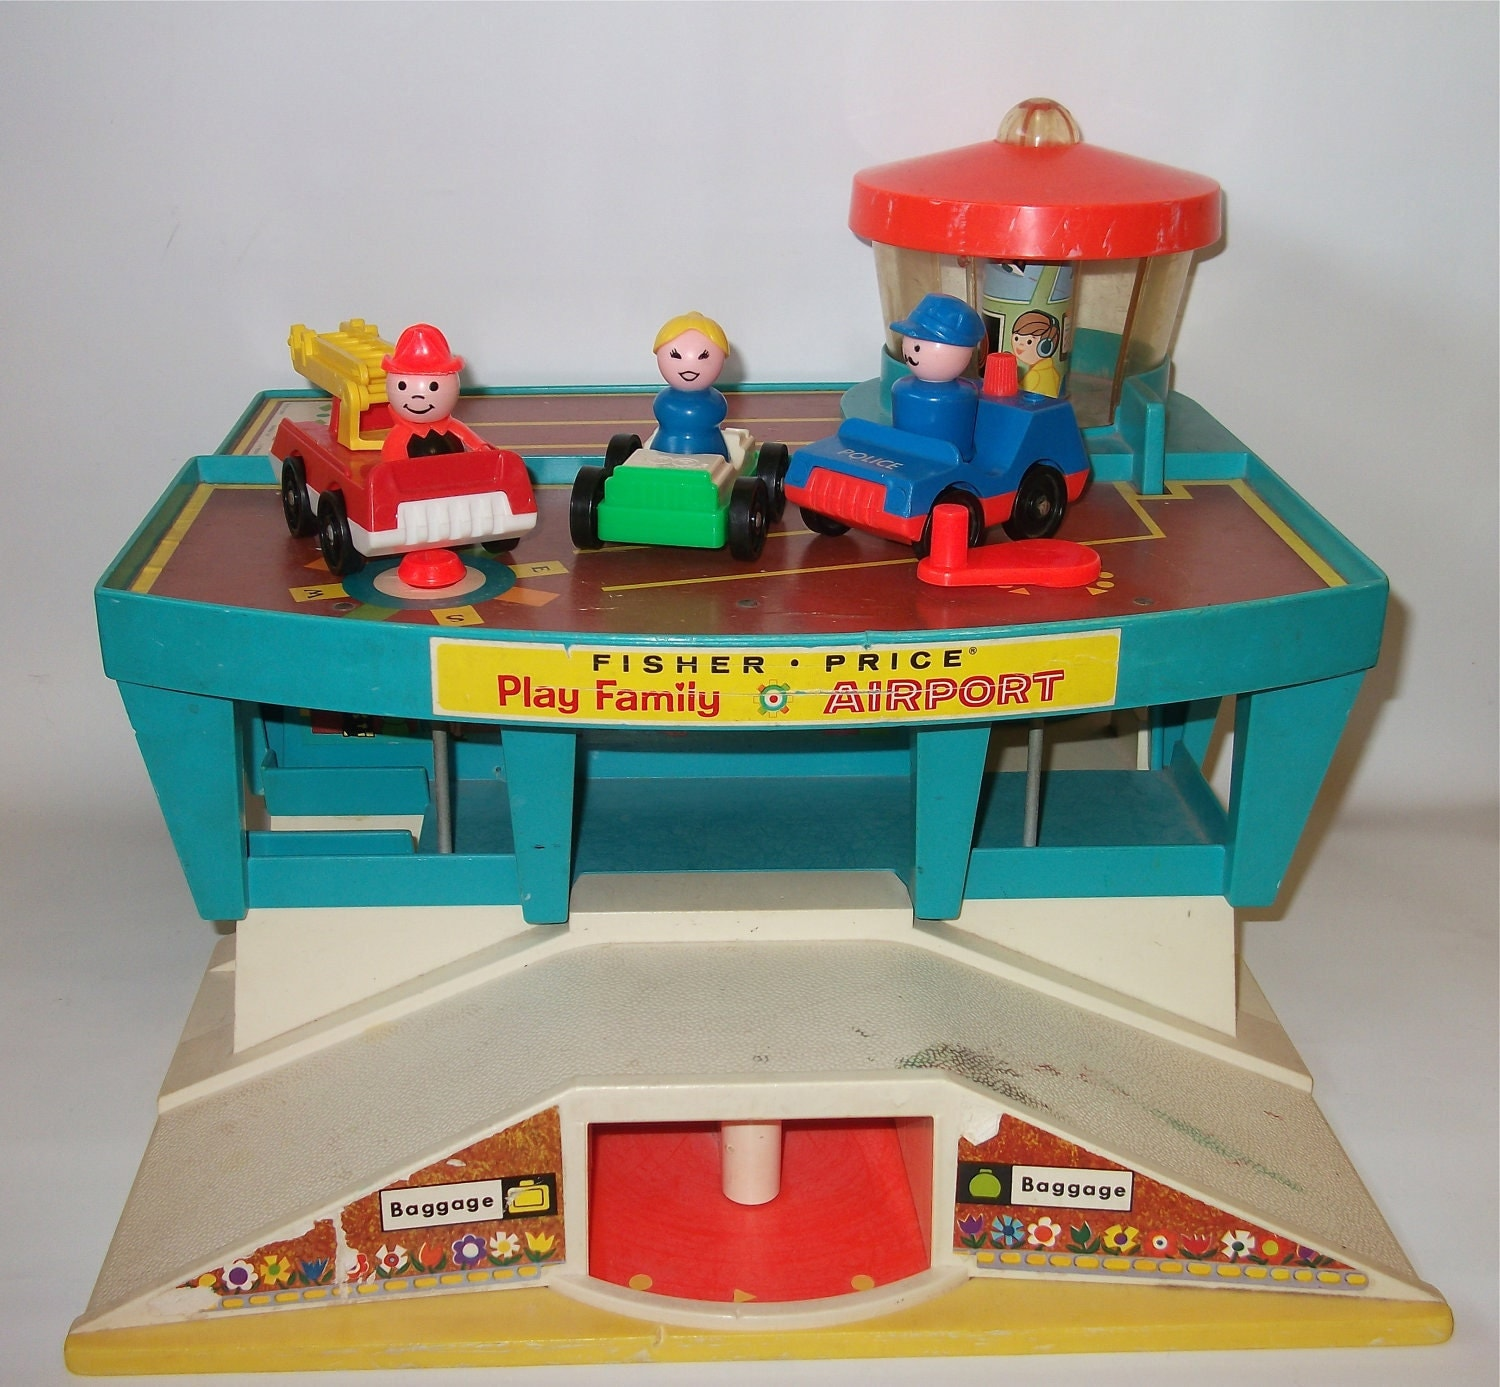 Classic Fisher Price Toys : Vintage fisher price airport playset play family